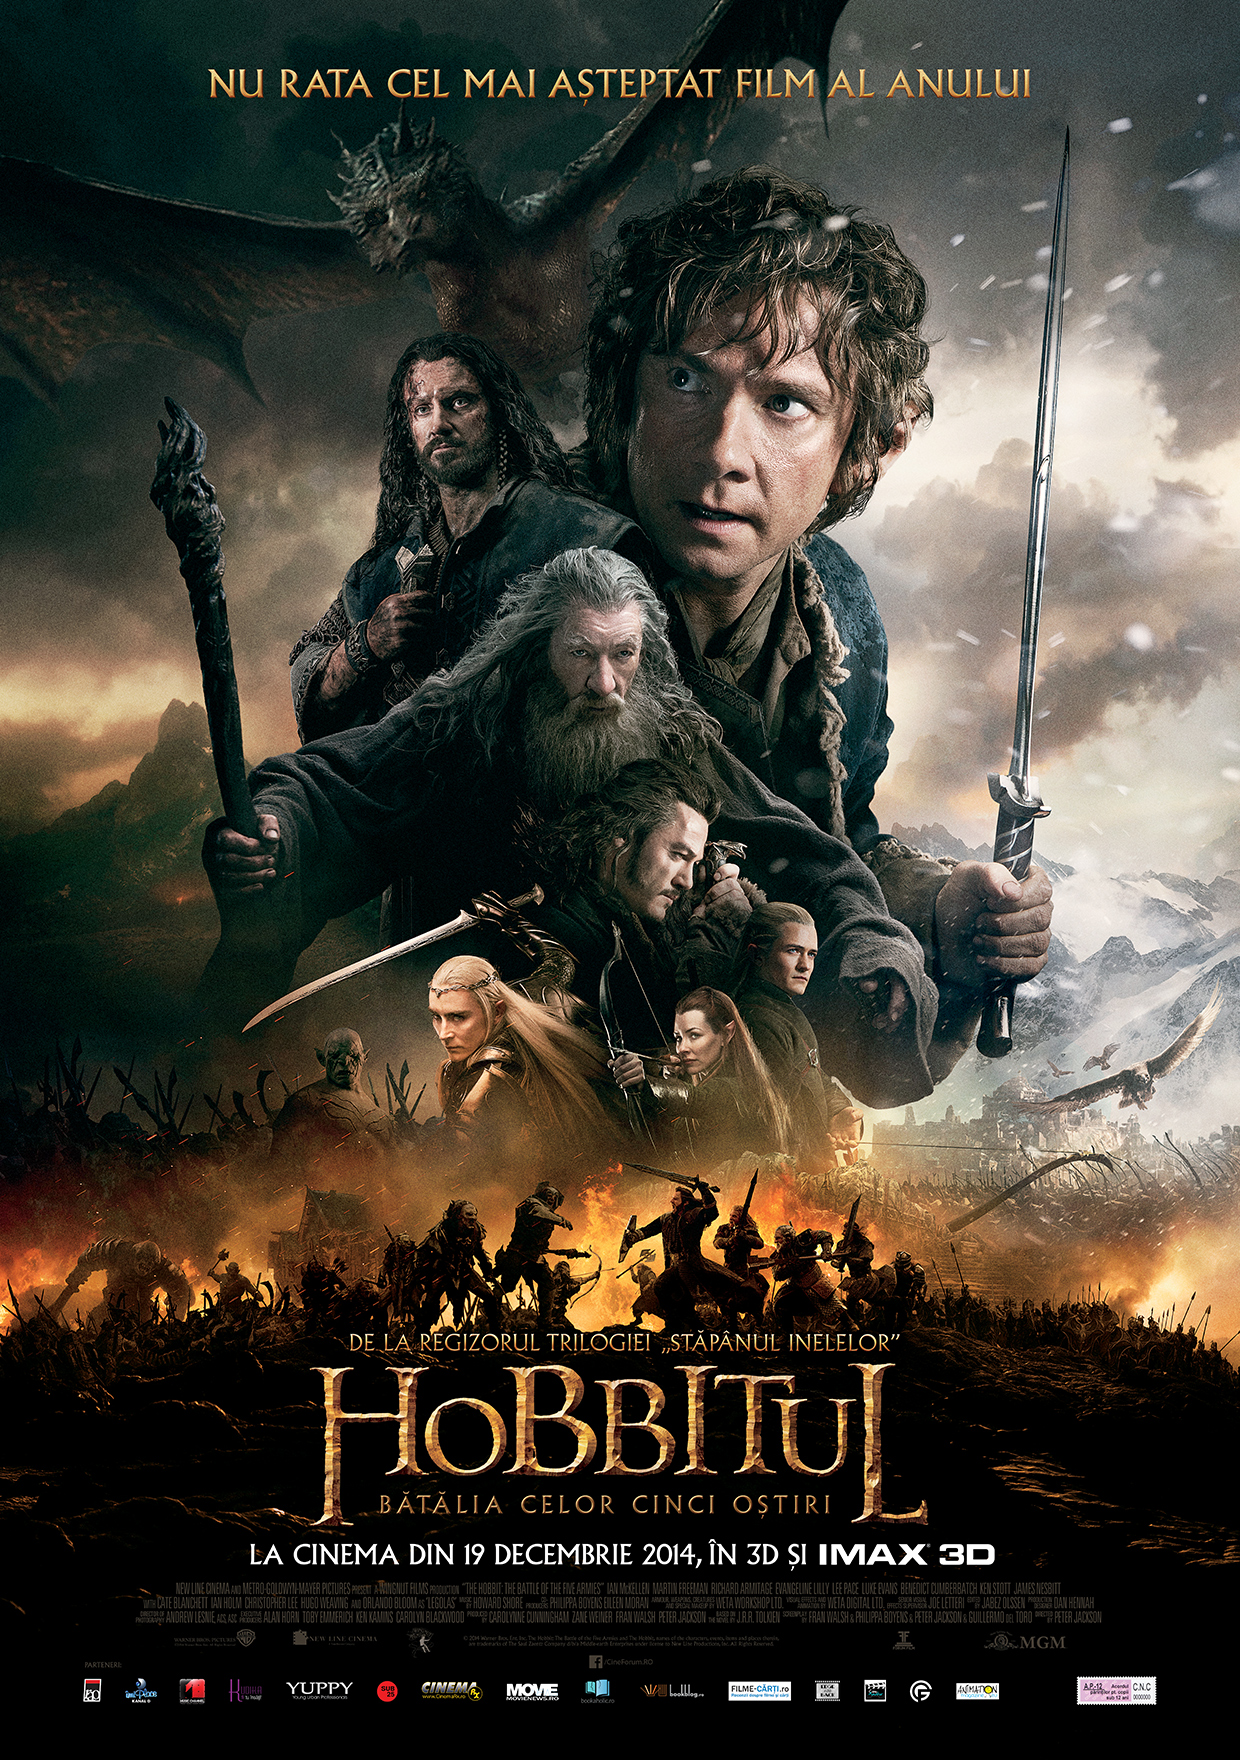 Hobbitul: Batalia celor cinci ostiri – 3D / The Hobbit: Battle of the Five Armies – 3D